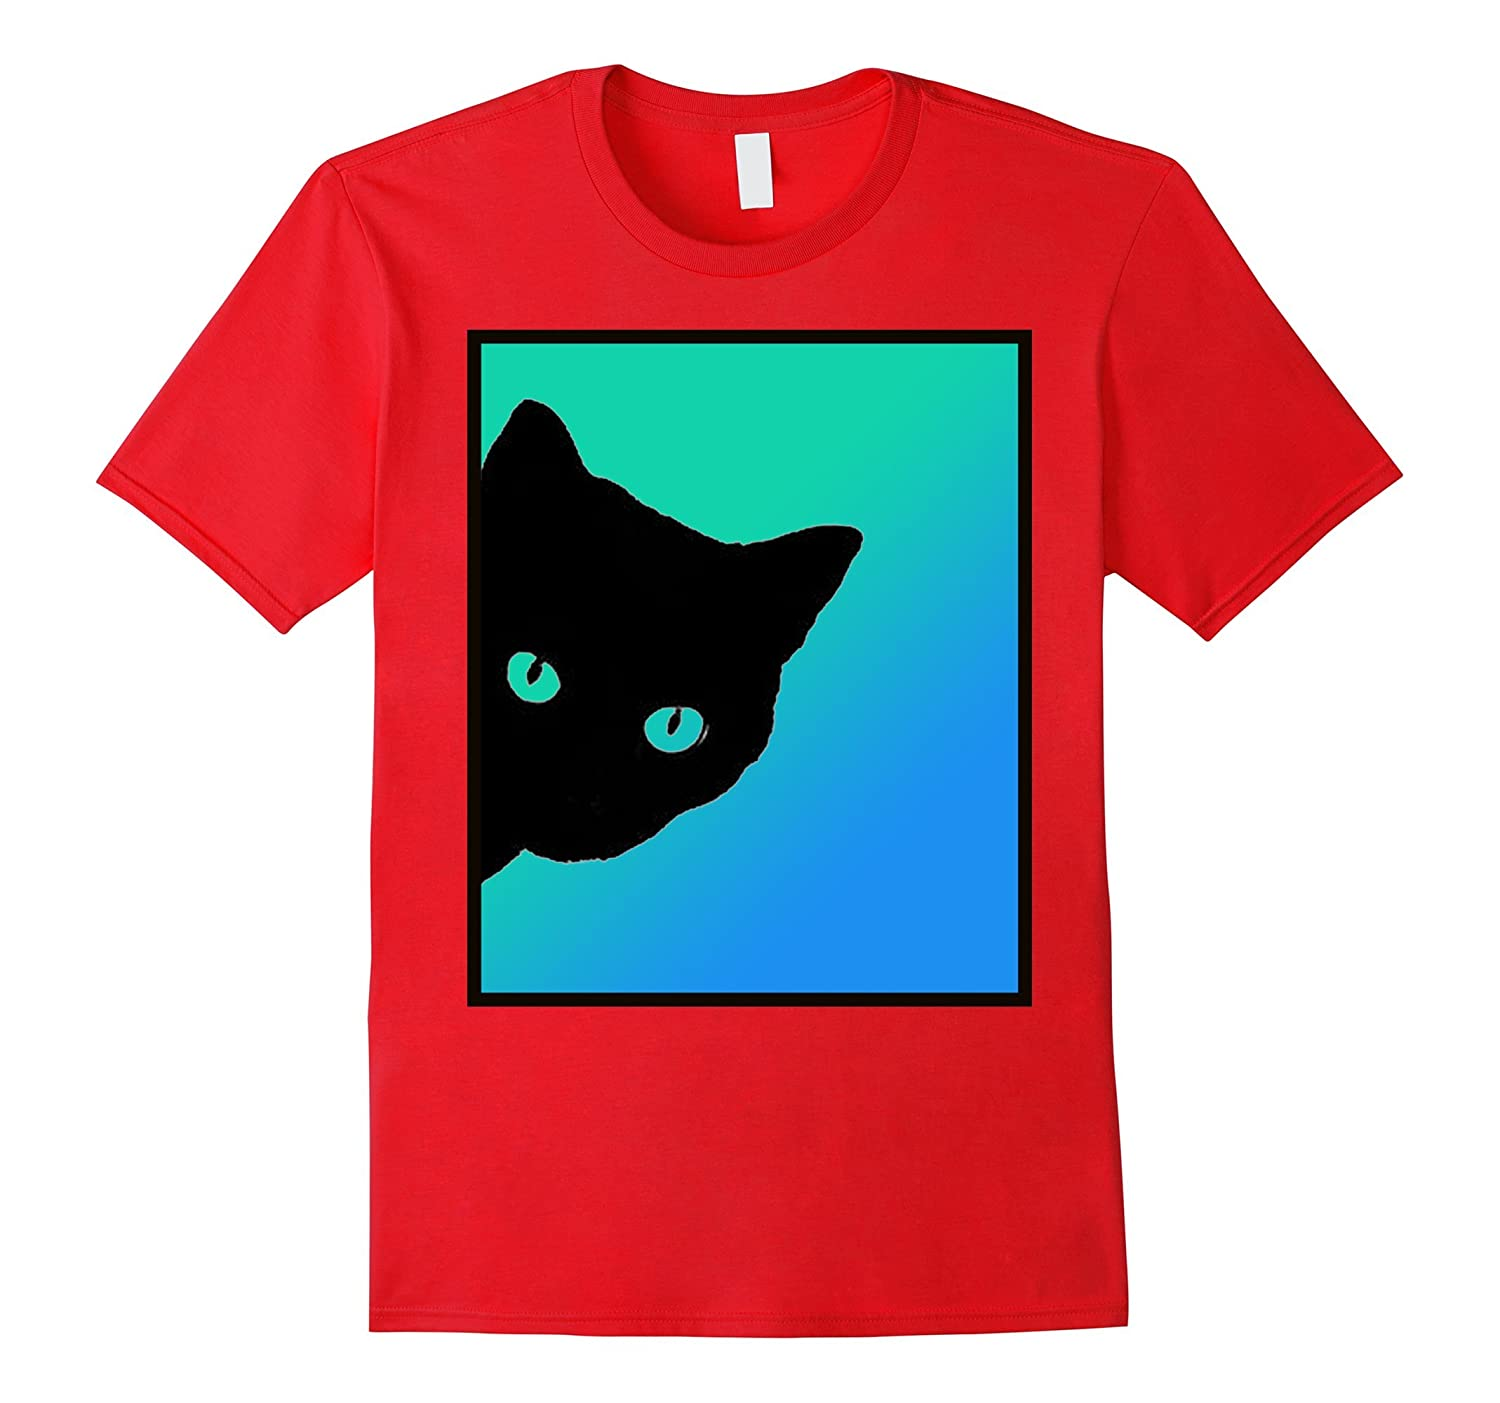 Black Cat Blue Green Tshirt Designed By Cats Made Better-CL